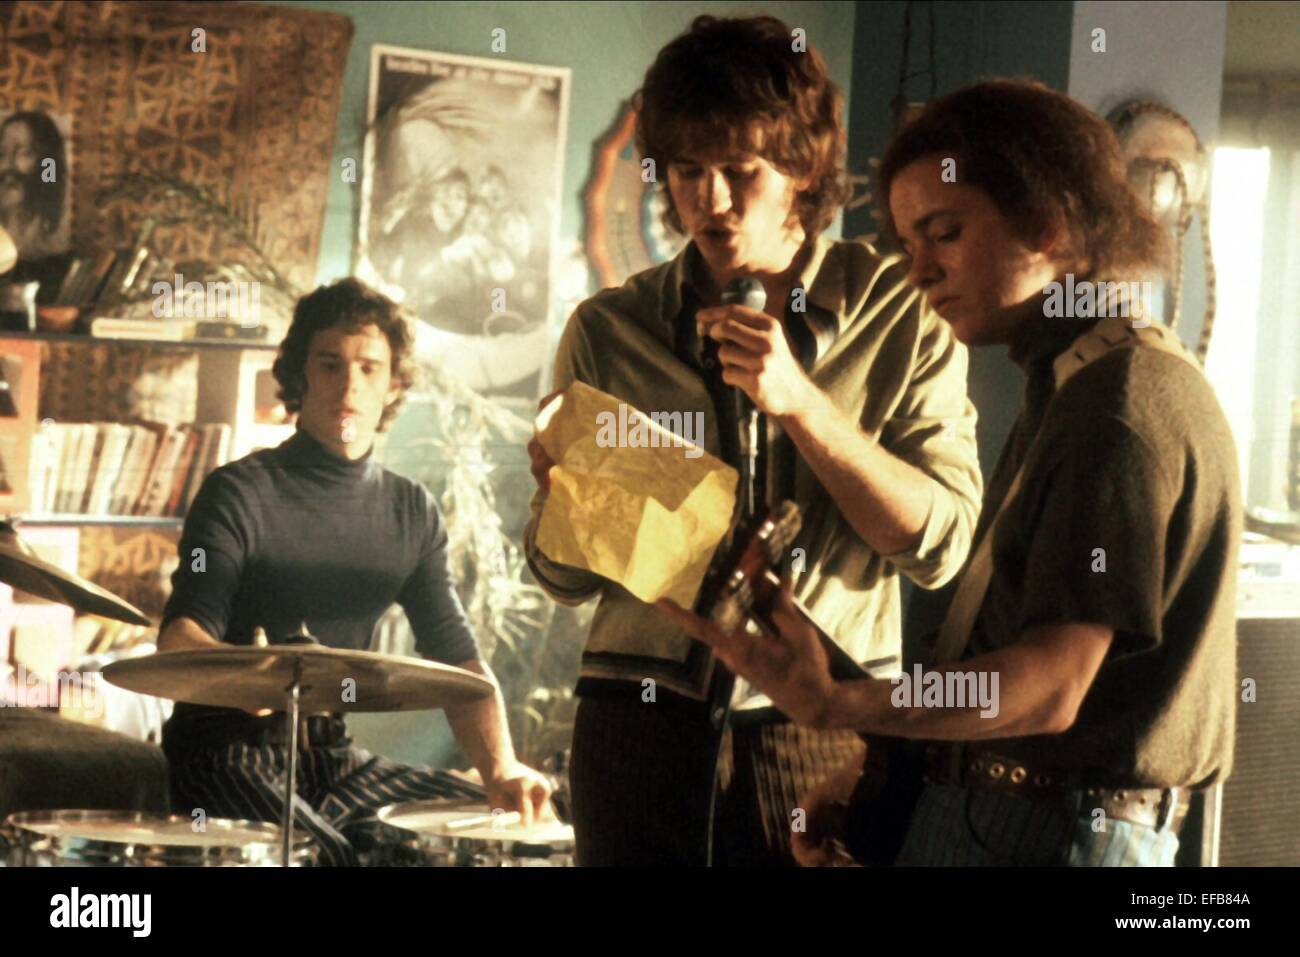 FRANK WHALEY VAL KILMER u0026 KEVIN DILLON THE DOORS (1991)  sc 1 st  Alamy & FRANK WHALEY VAL KILMER u0026 KEVIN DILLON THE DOORS (1991 Stock Photo ...